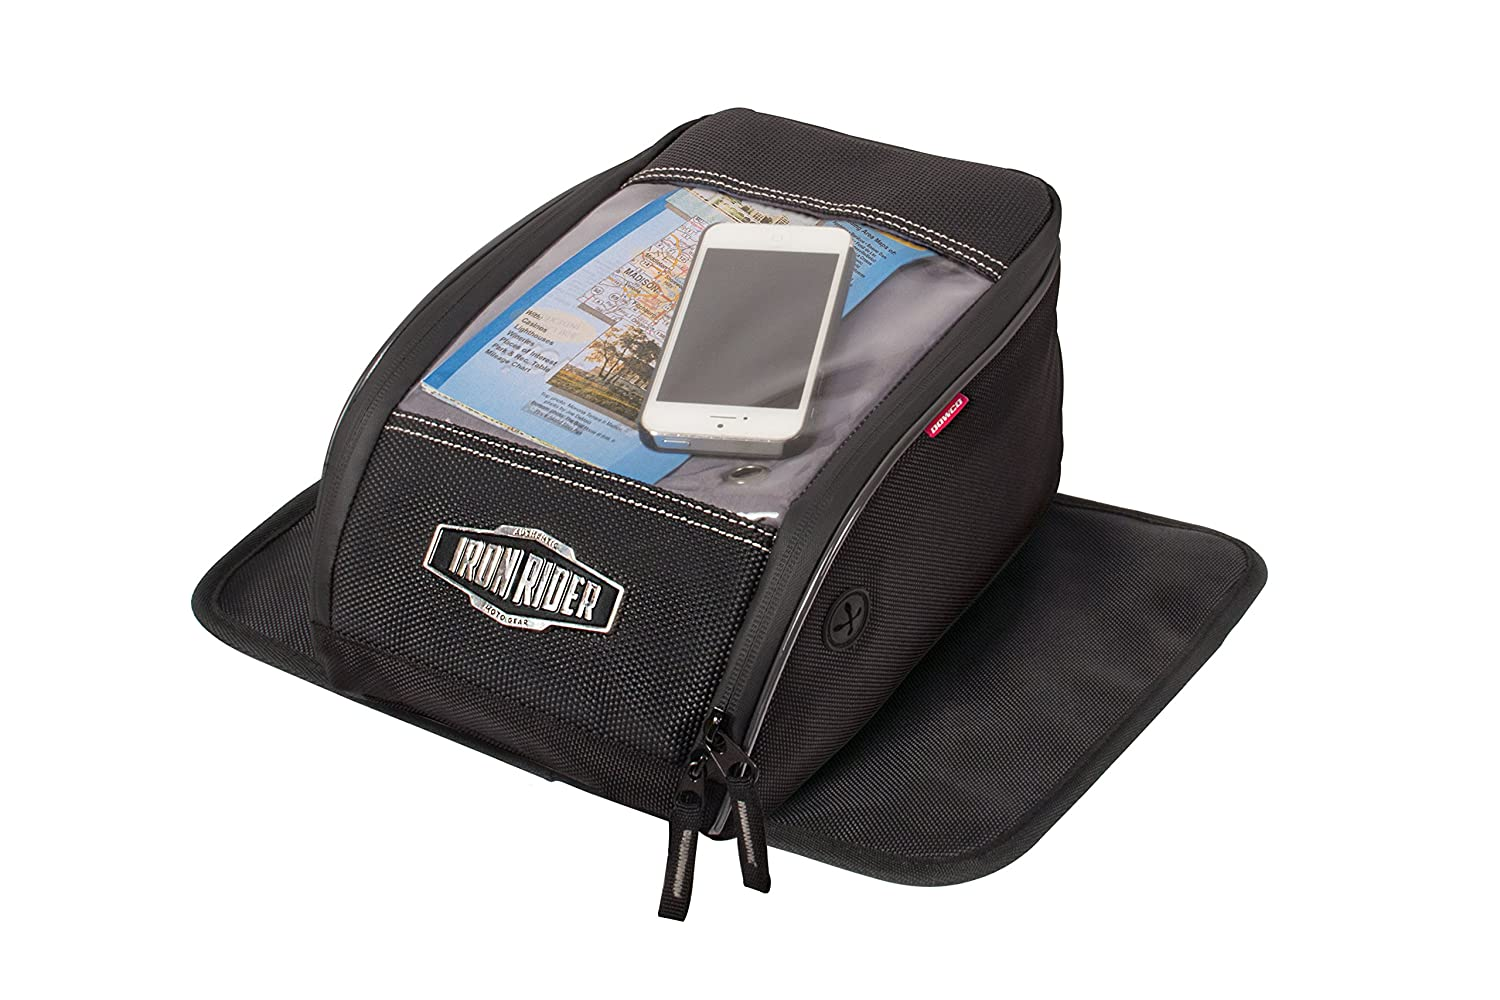 Dowco Iron Rider 50130-00 Water Resistant Reflective Magnetic Mount Motorcycle Tank Bag With Window: Black, Universal Fit, 7 Liter Capacity Dowco Inc.